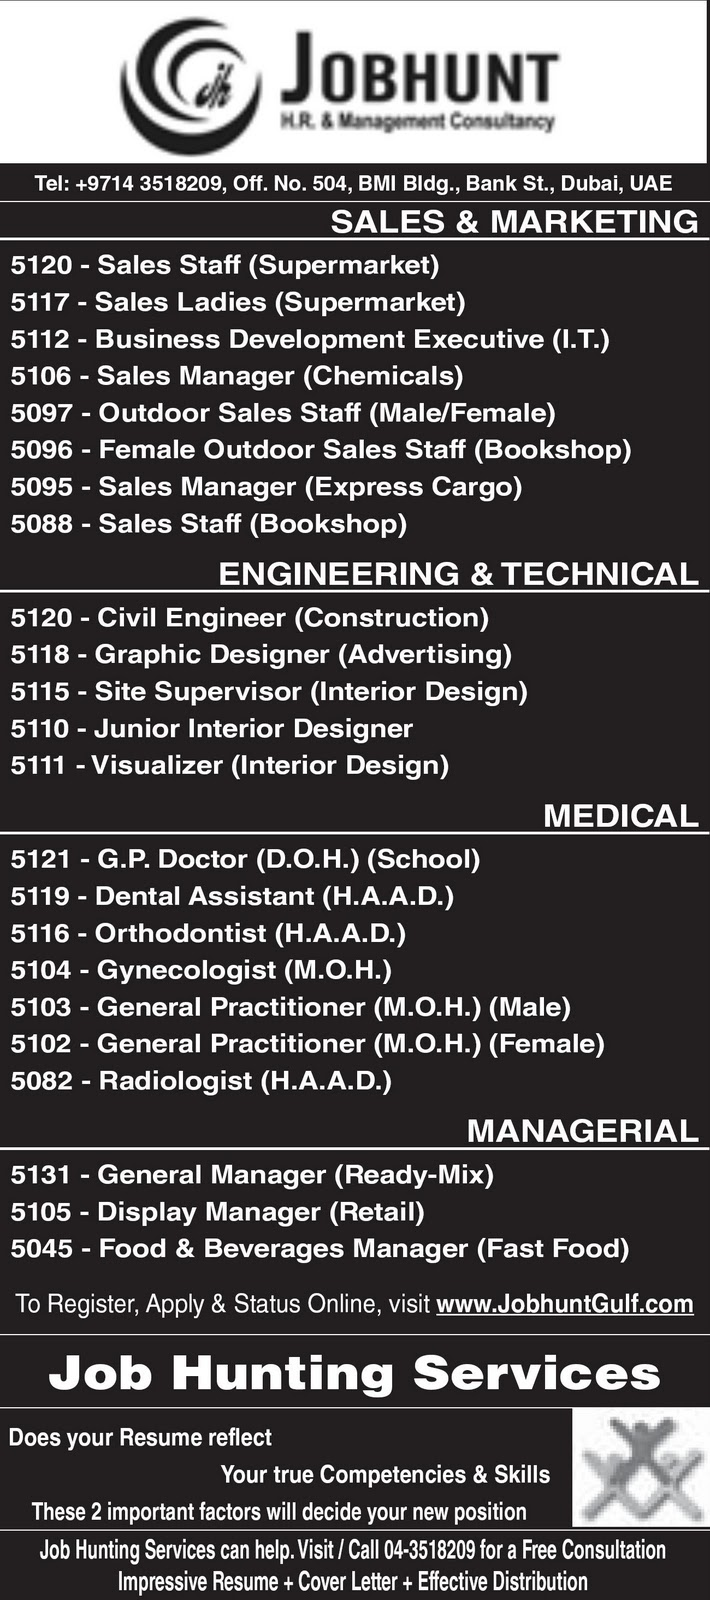 Dental Assistant jobs are available in UAE